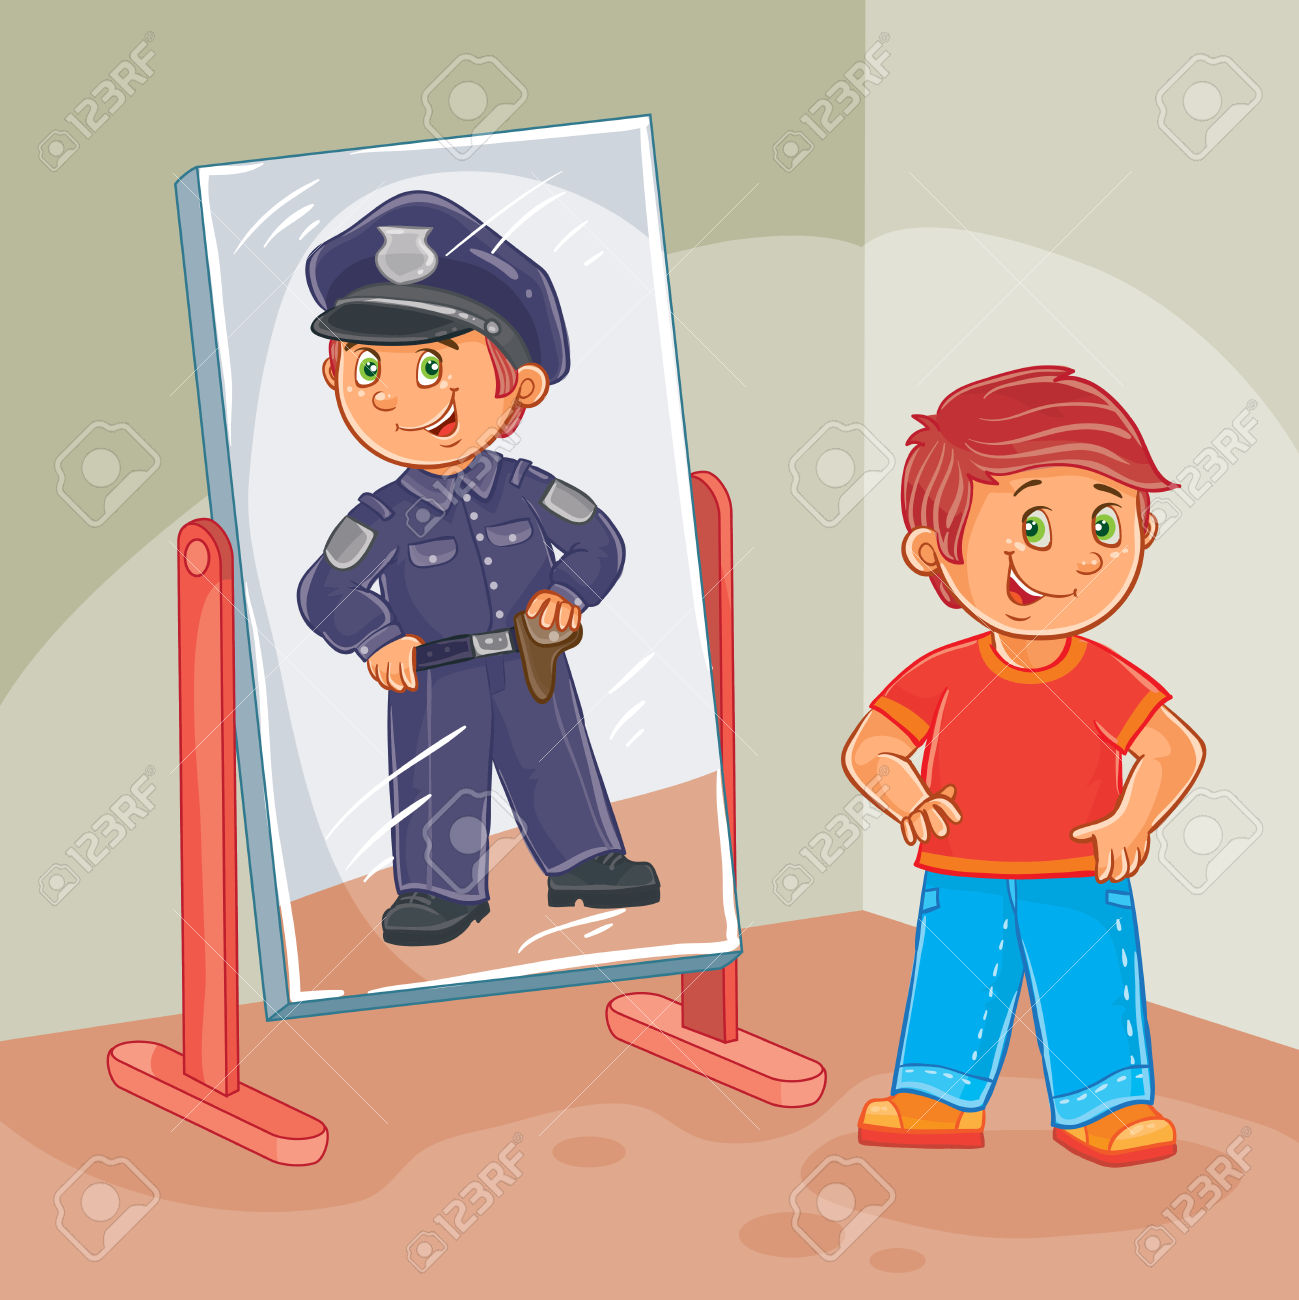 Vector Illustration Of A Little Boy Dreams Of Becoming A Police.